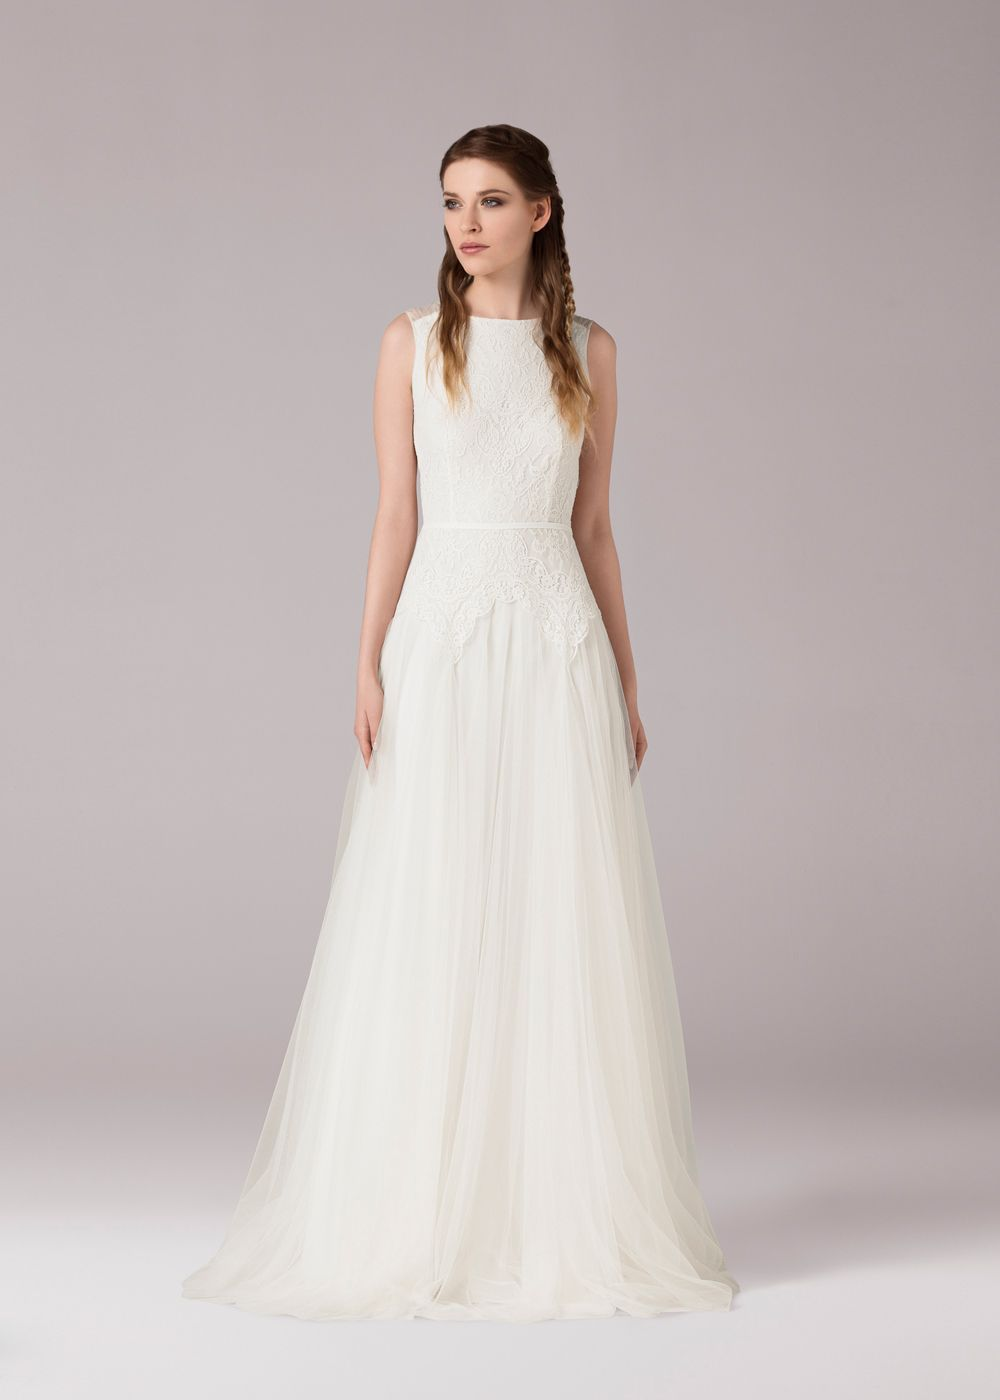 Aline wedding dress made of french cotton lace on a tulle bodice